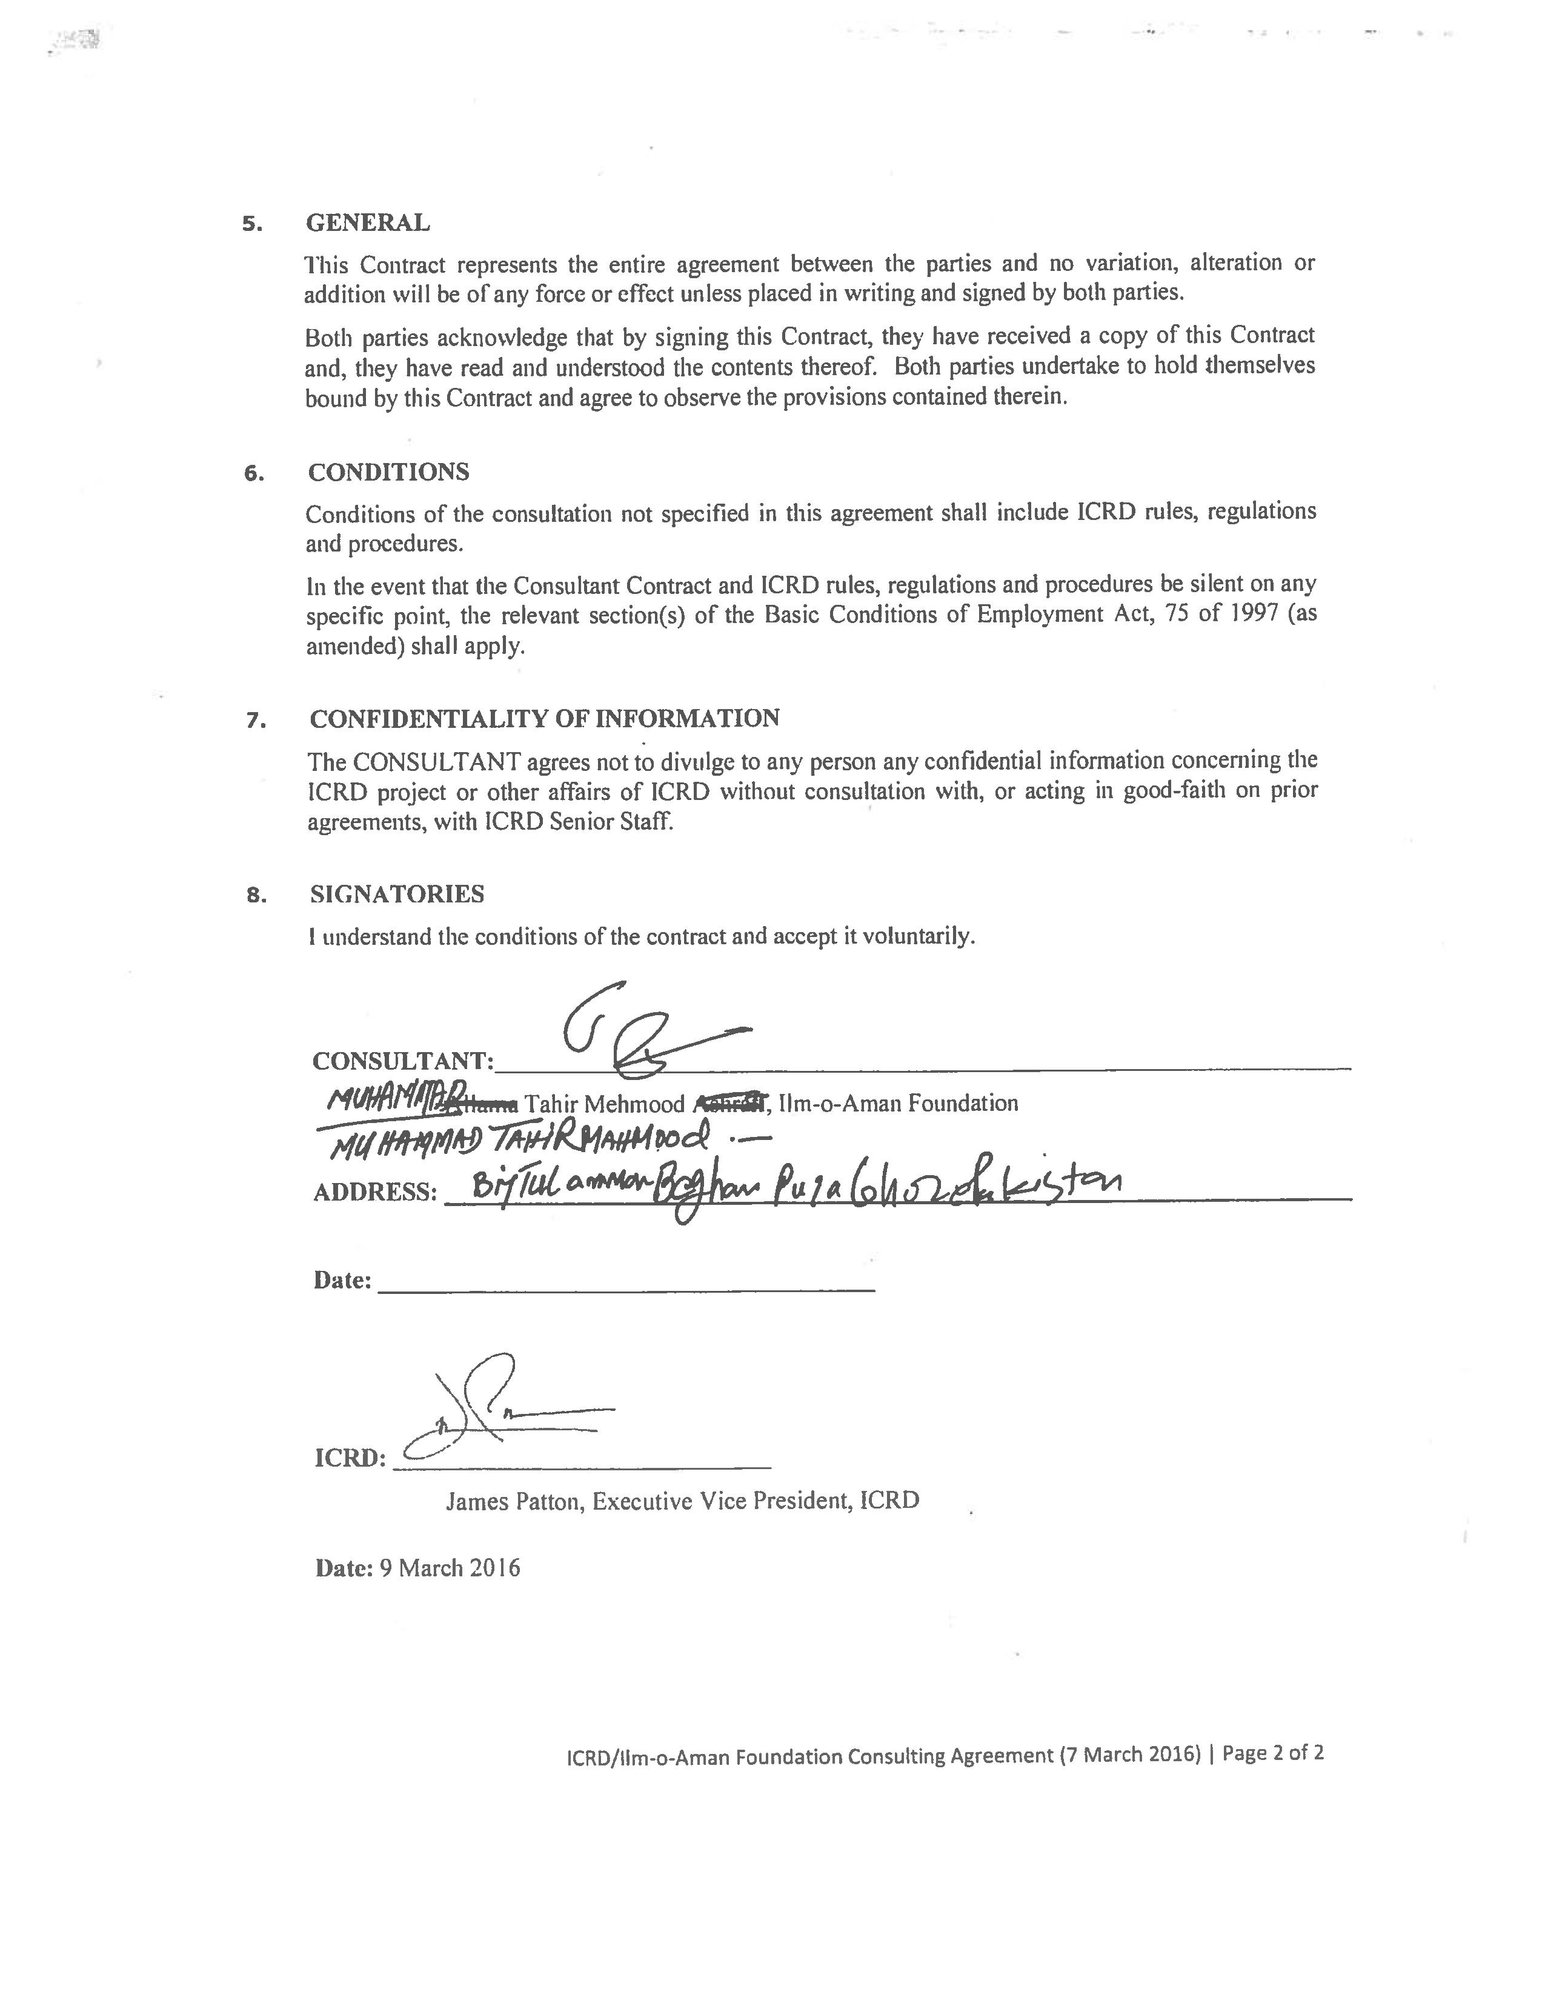 US contract for Ashrafi-page-003.jpg